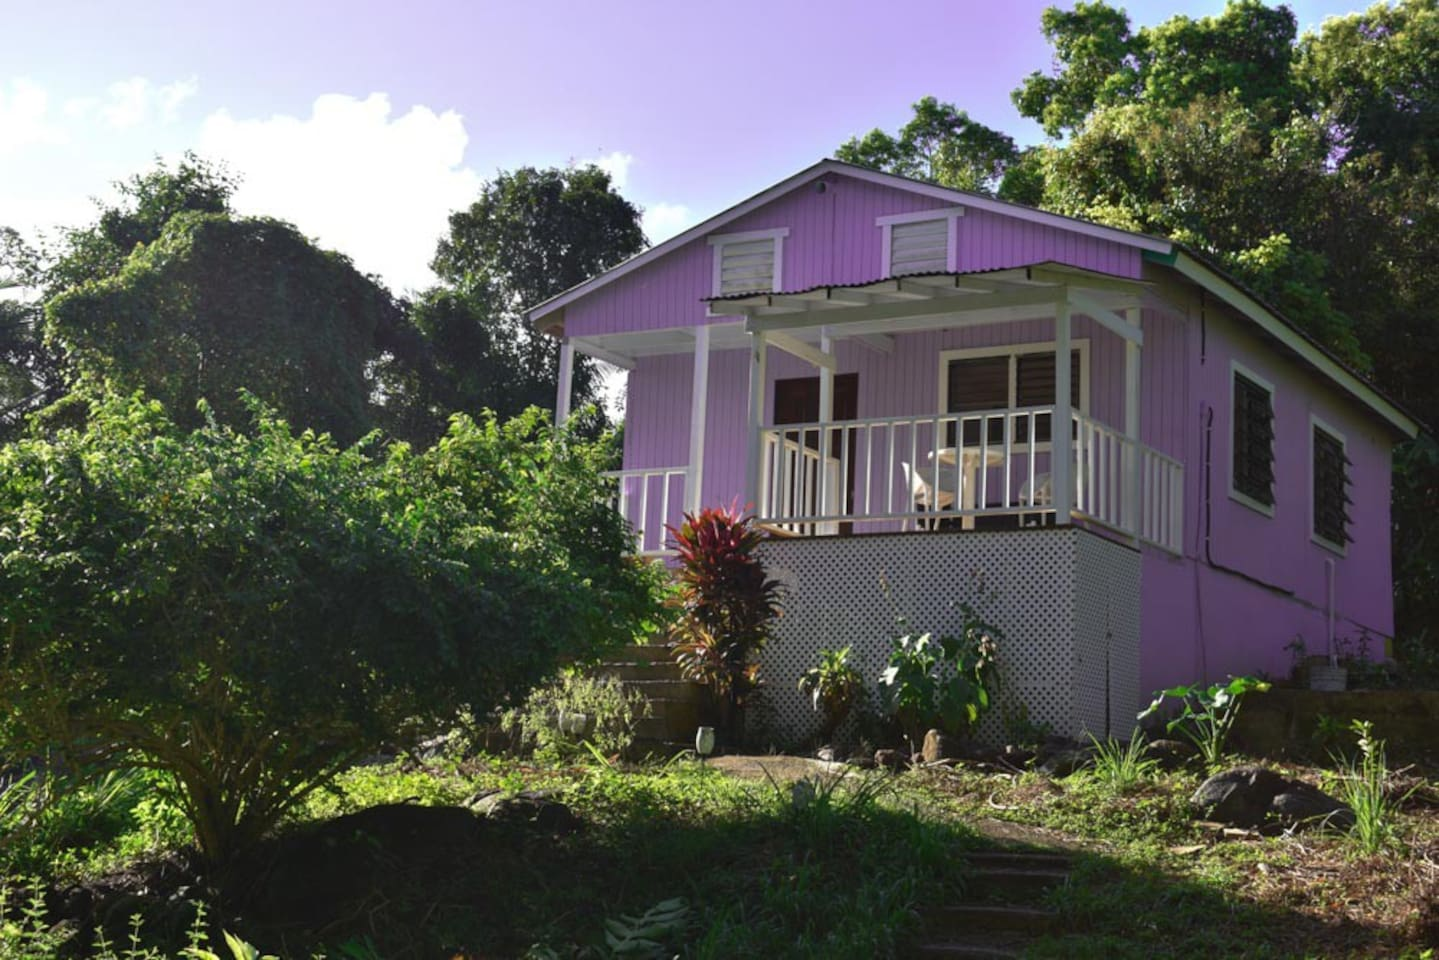 Rainforest cottage surrounded by lush foliage and fruit trees galore.